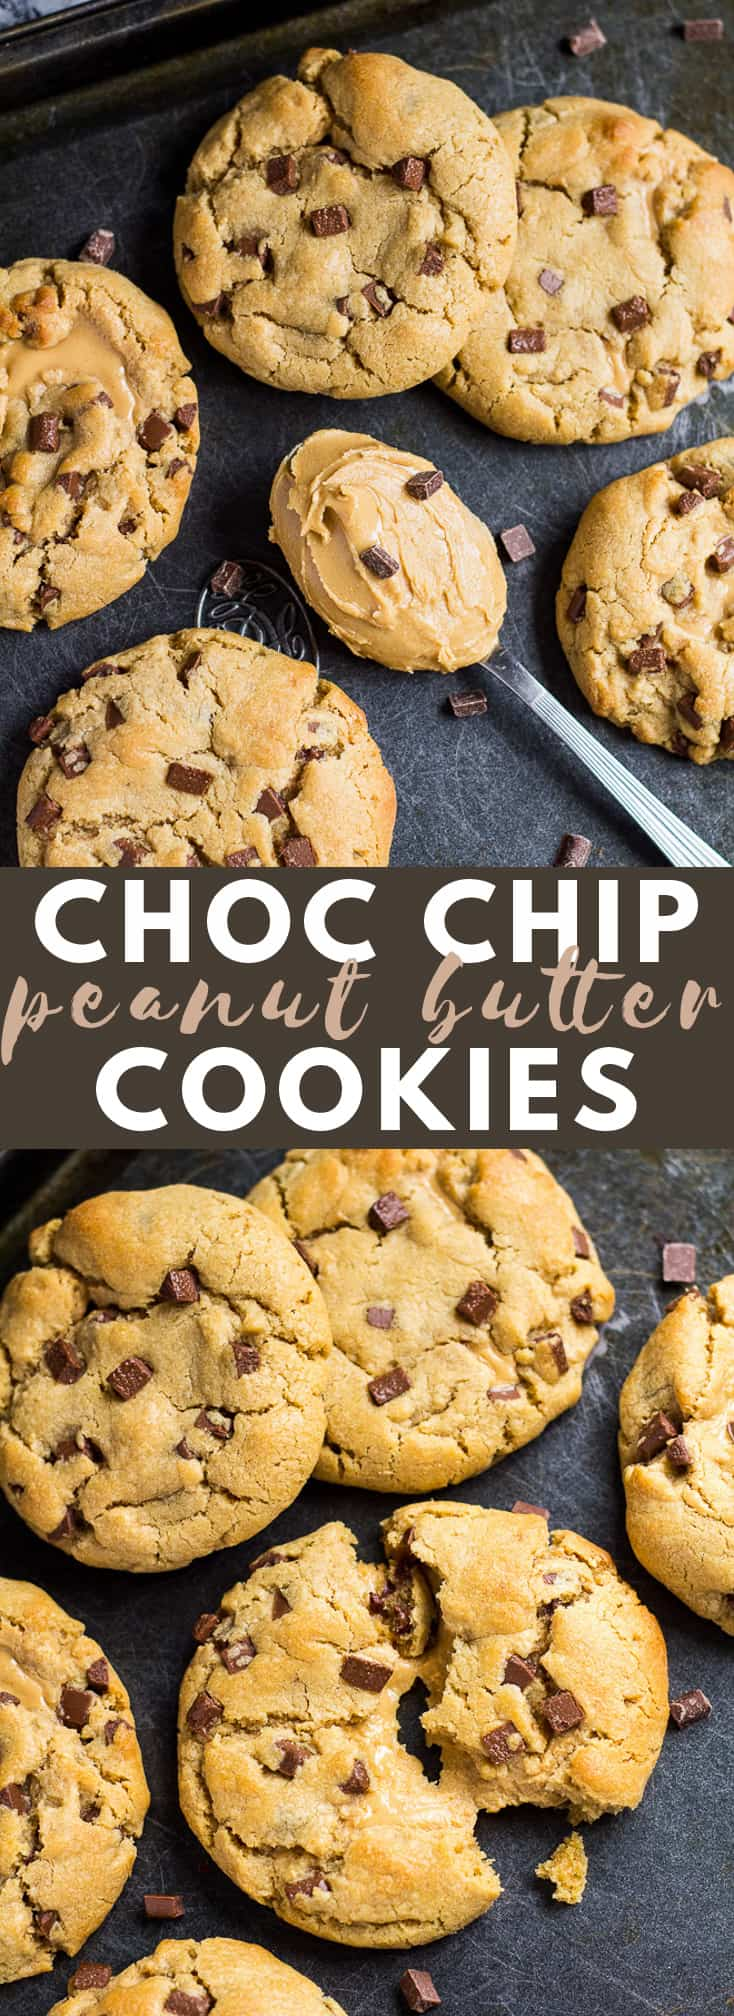 Chocolate Chip Peanut Butter Cookies- Deliciously thick and chewy cookies that are loaded with peanut butter flavour, andfull ofchocolate chips! #peanutbutter #cookies #cookierecipes